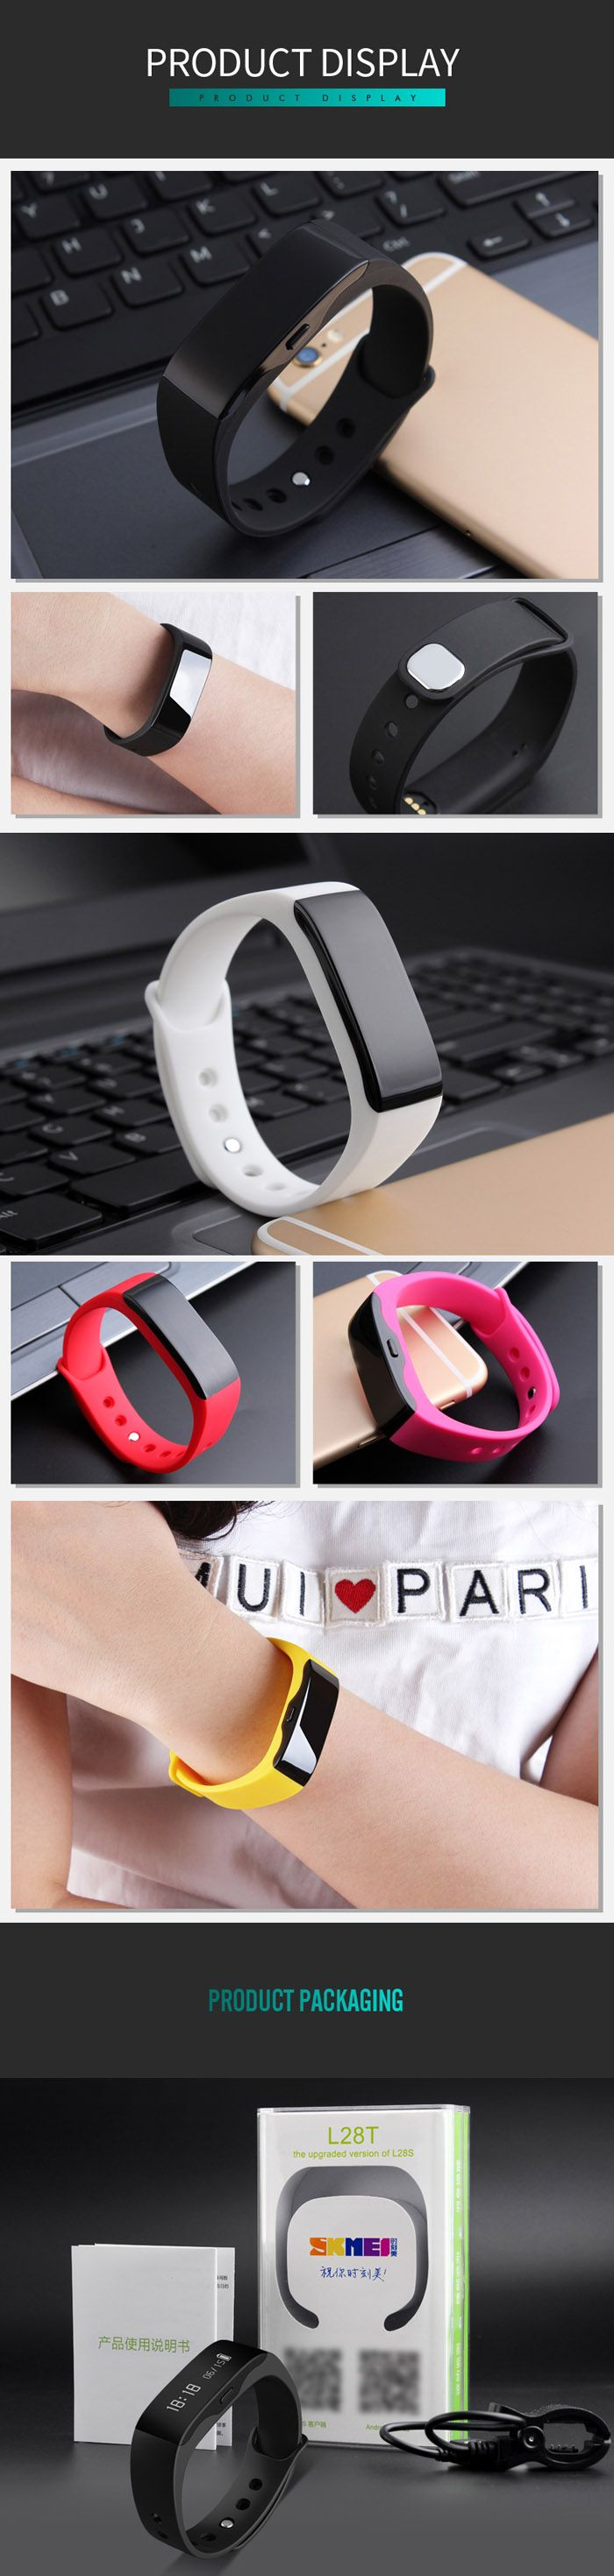 SKMEI L28T Real-time Sports Track Smart Wristband with 30m Waterproof Grade